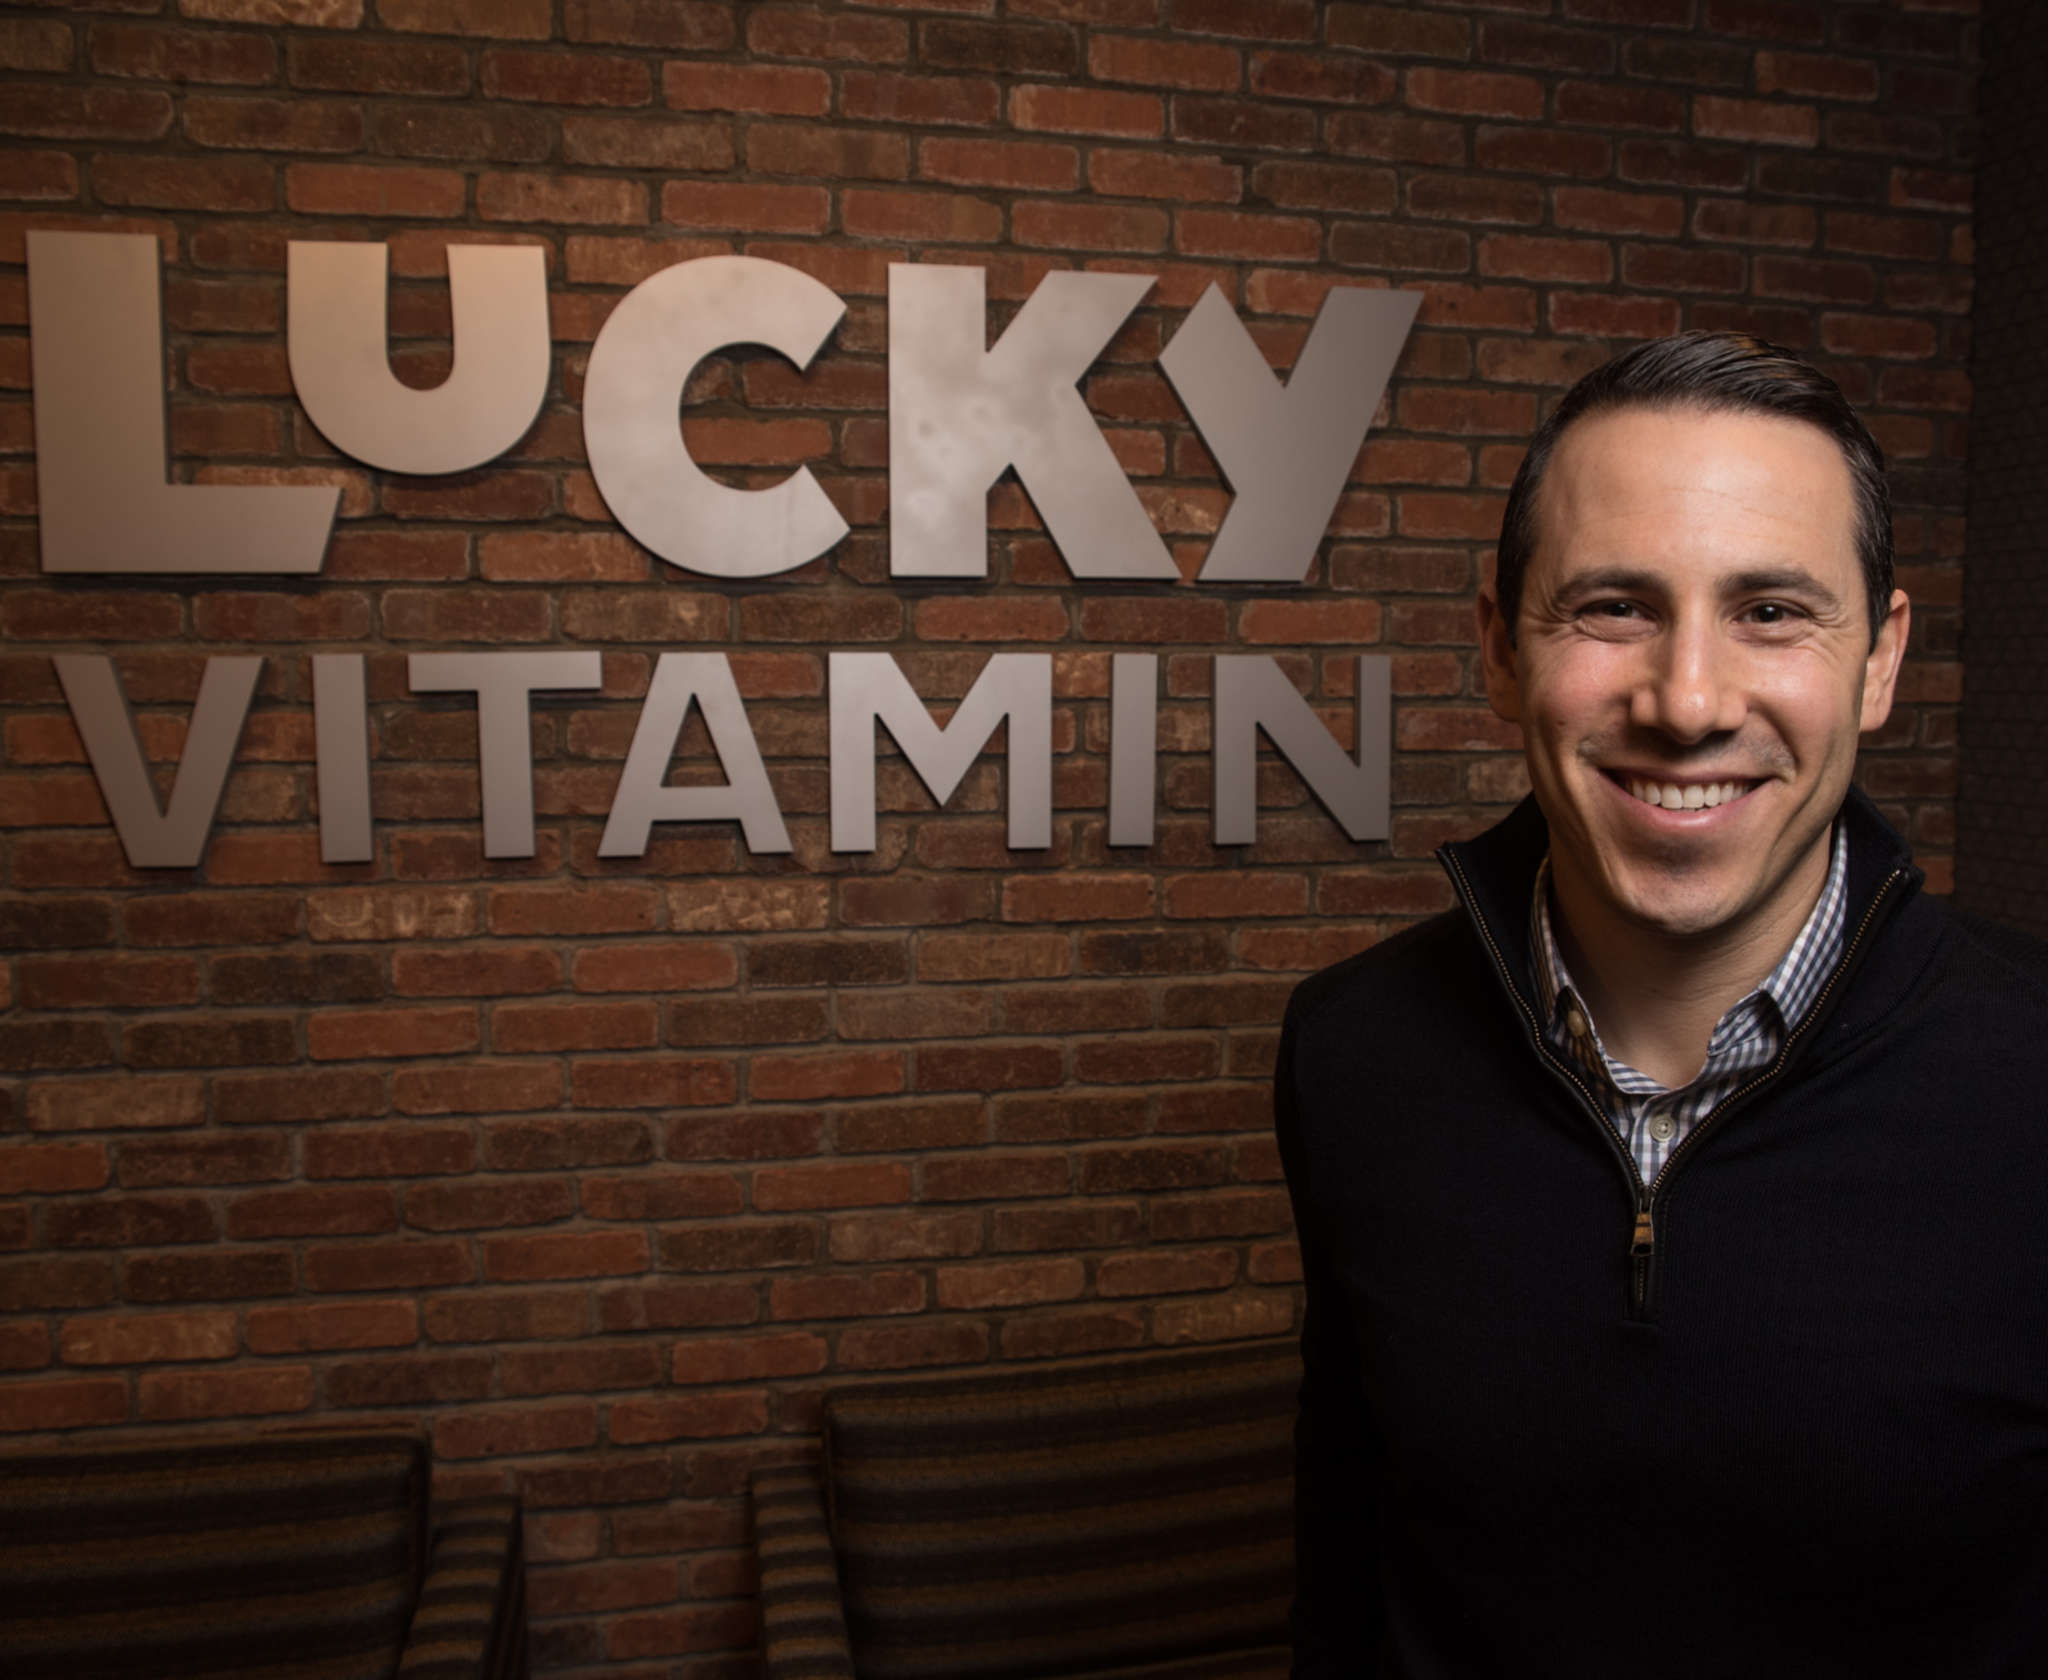 Sam Wolf runs Lucky Vitamin, a Conshohocken-based company offering healthy foods and supplements.